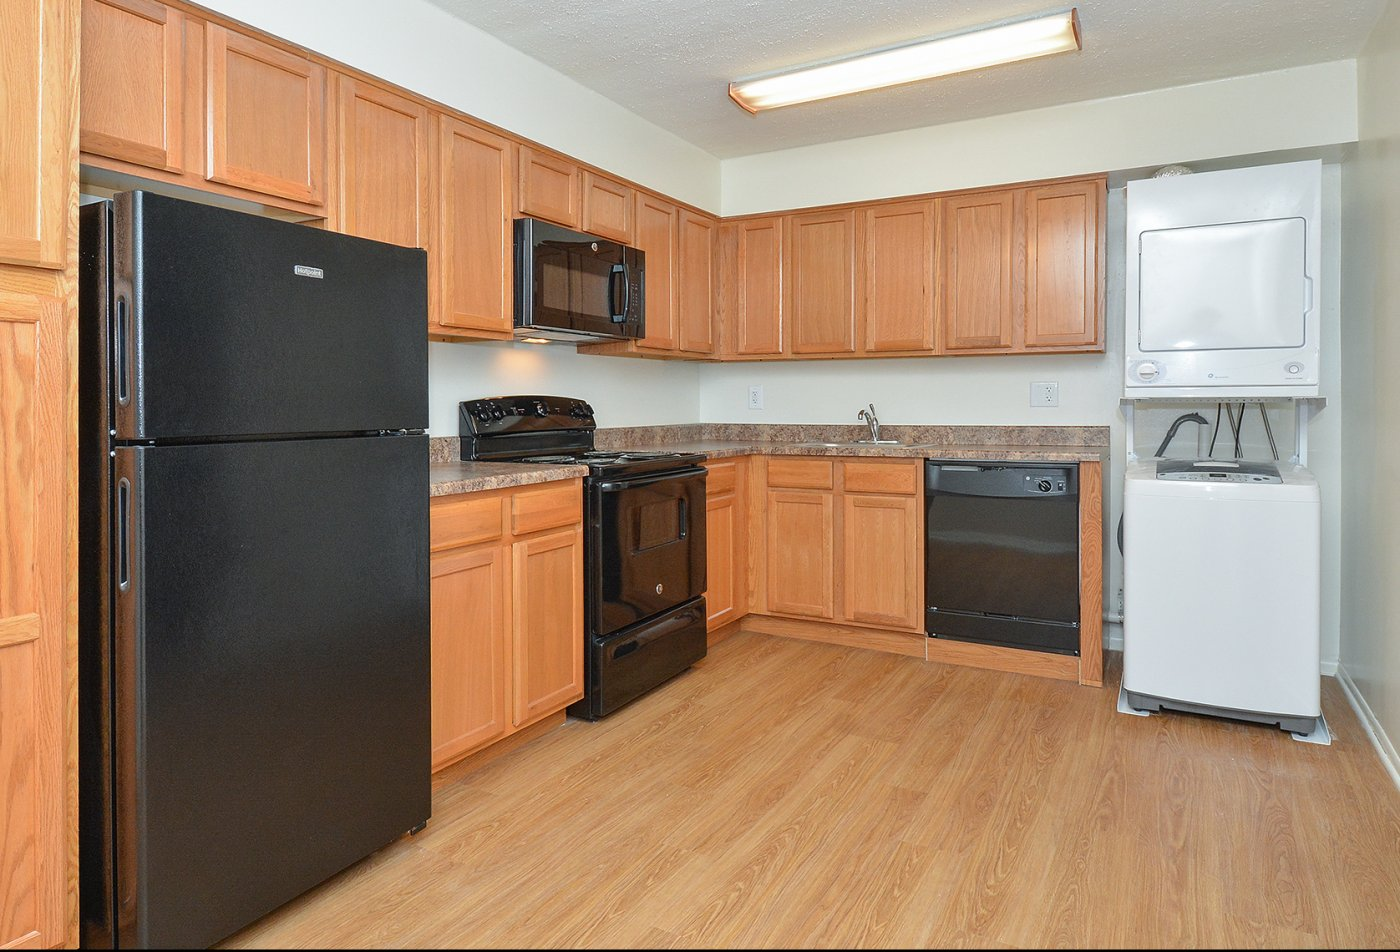 State-of-the-Art Kitchen | Willow Grove PA Apartment Homes | Willow Run Apartments